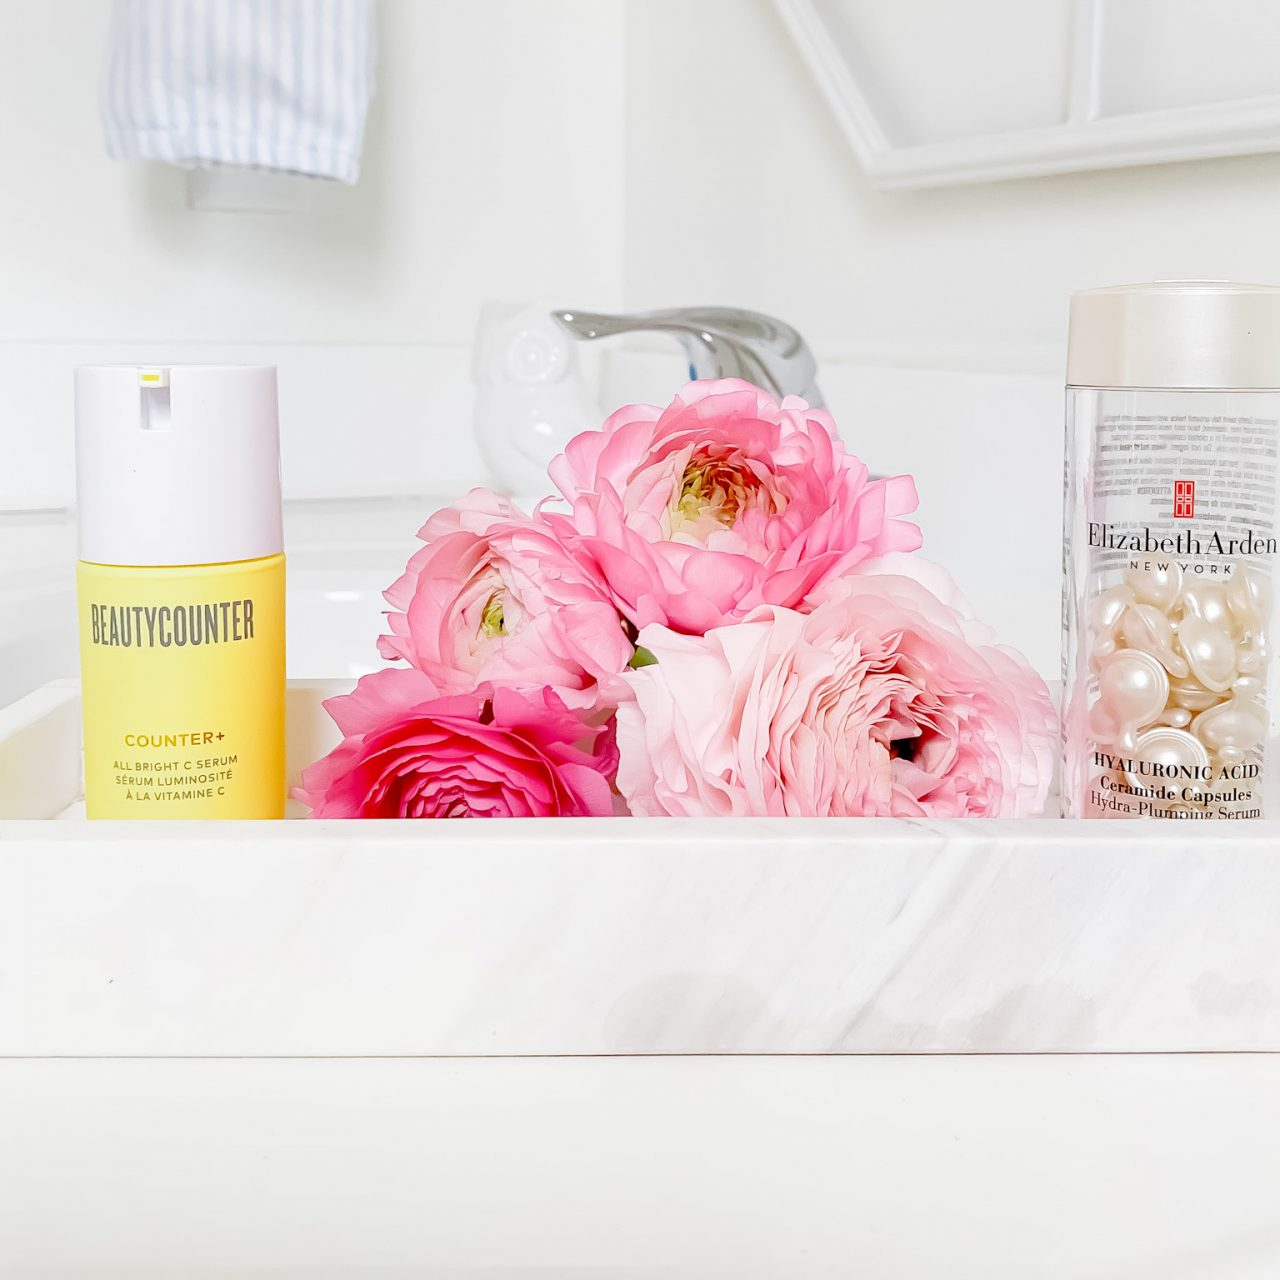 THE 2 AMAZING PRODUCTS THAT CHANGED MY SKIN